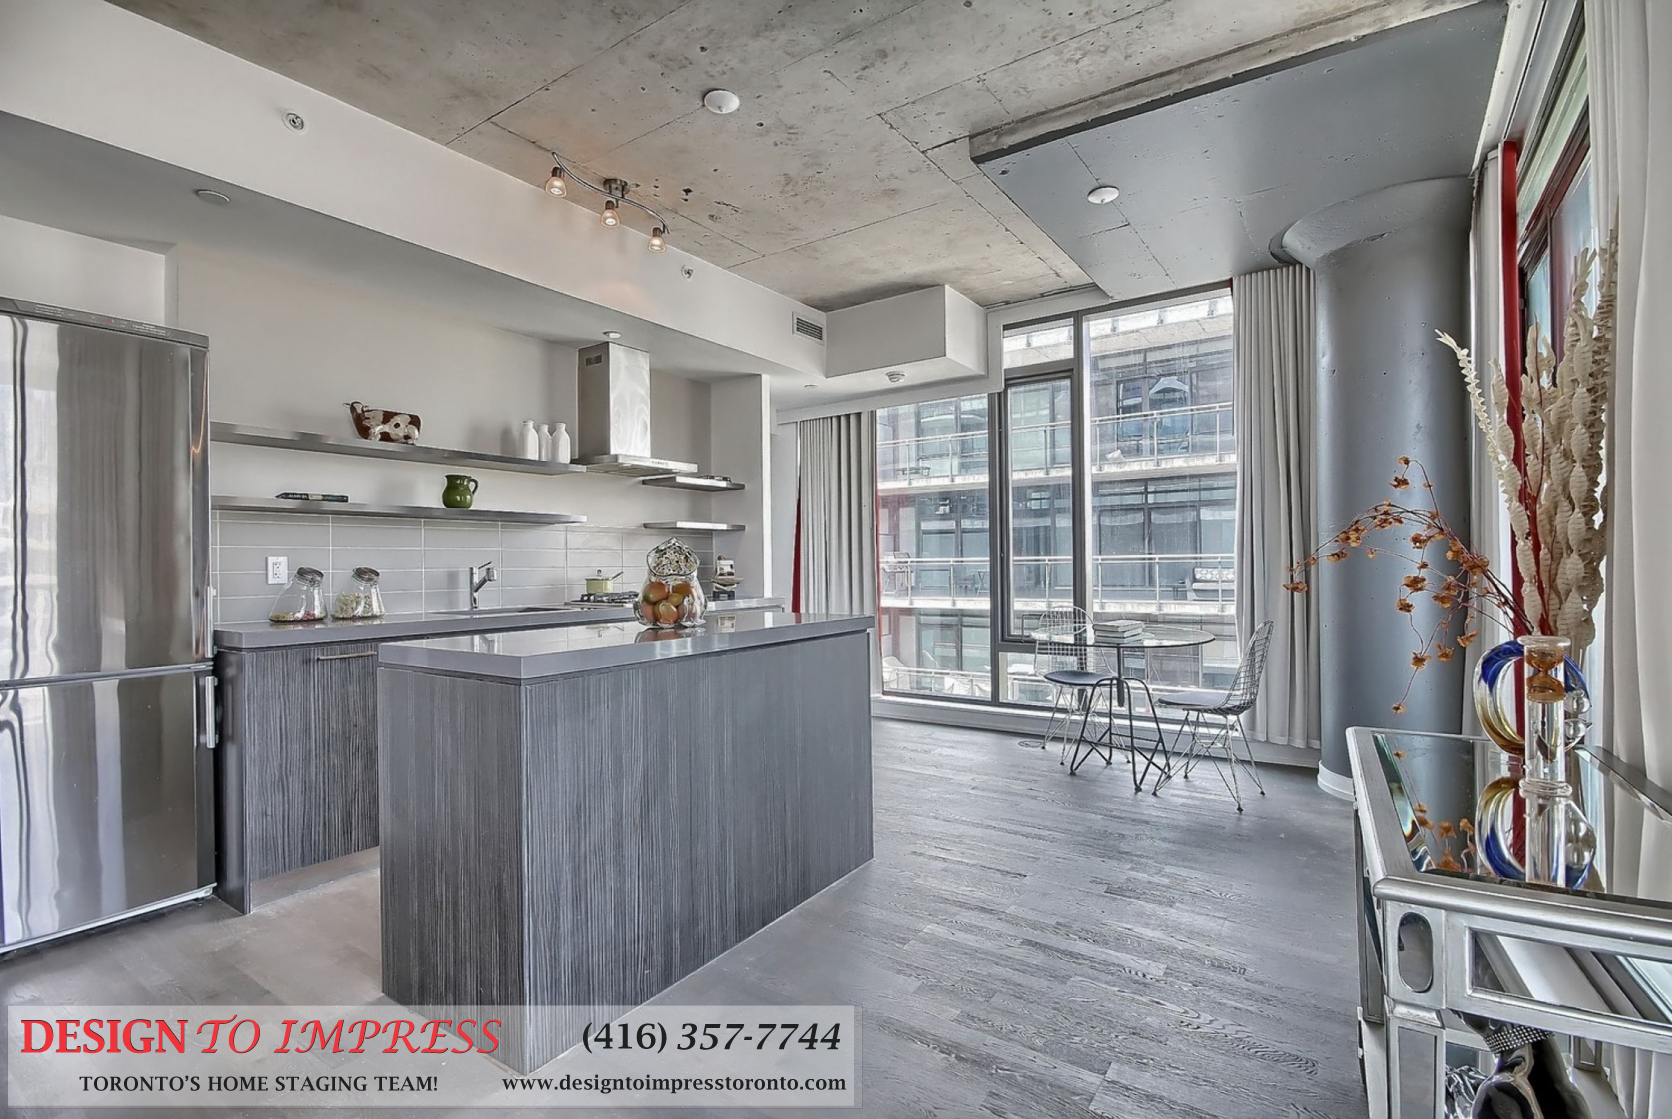 Kitchen, 560 King St. West, Toronto Condo Staging